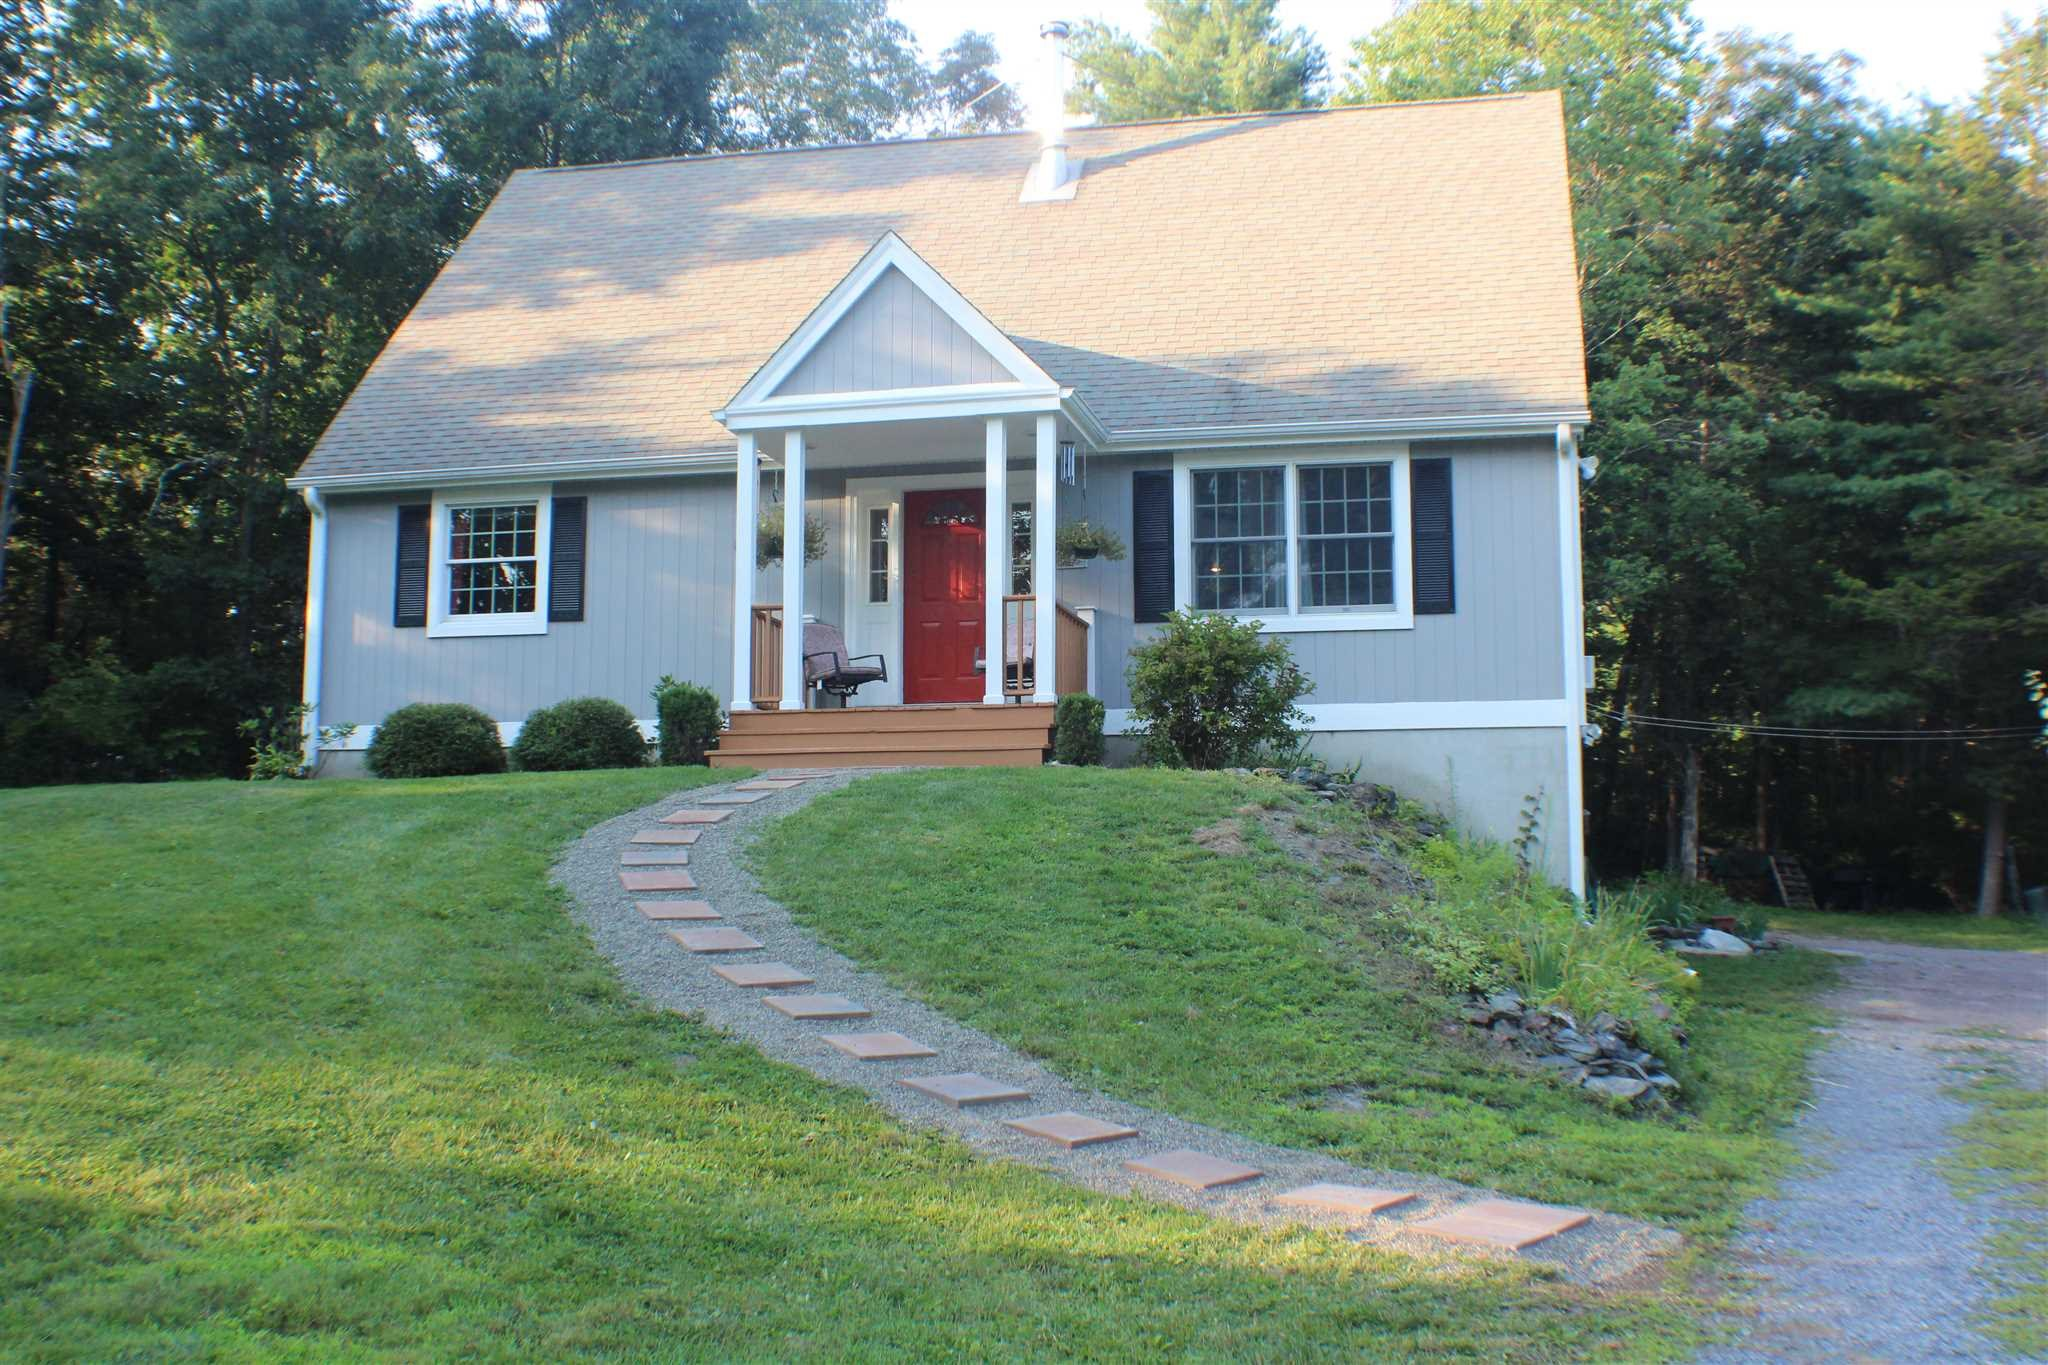 26 BARKIT KENNEL RD, Pleasant Valley, NY 12569